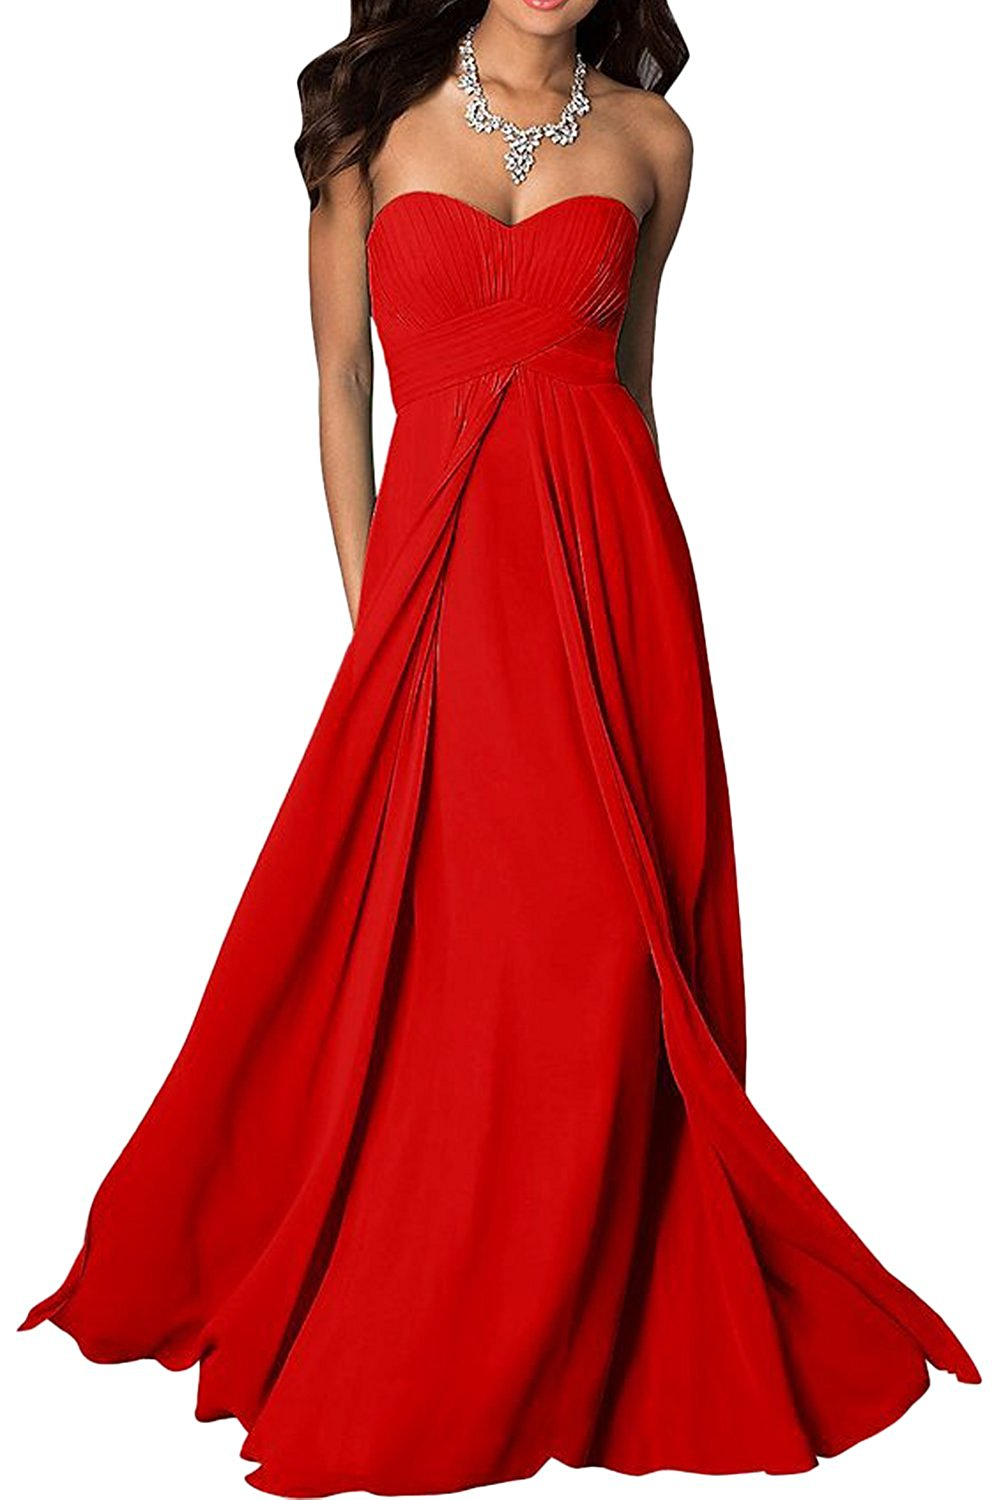 madison red scarlet crimson chiffon strapless long maxi bridesmaid wedding bride bridal prom ballgown evening formal occasion dress uk